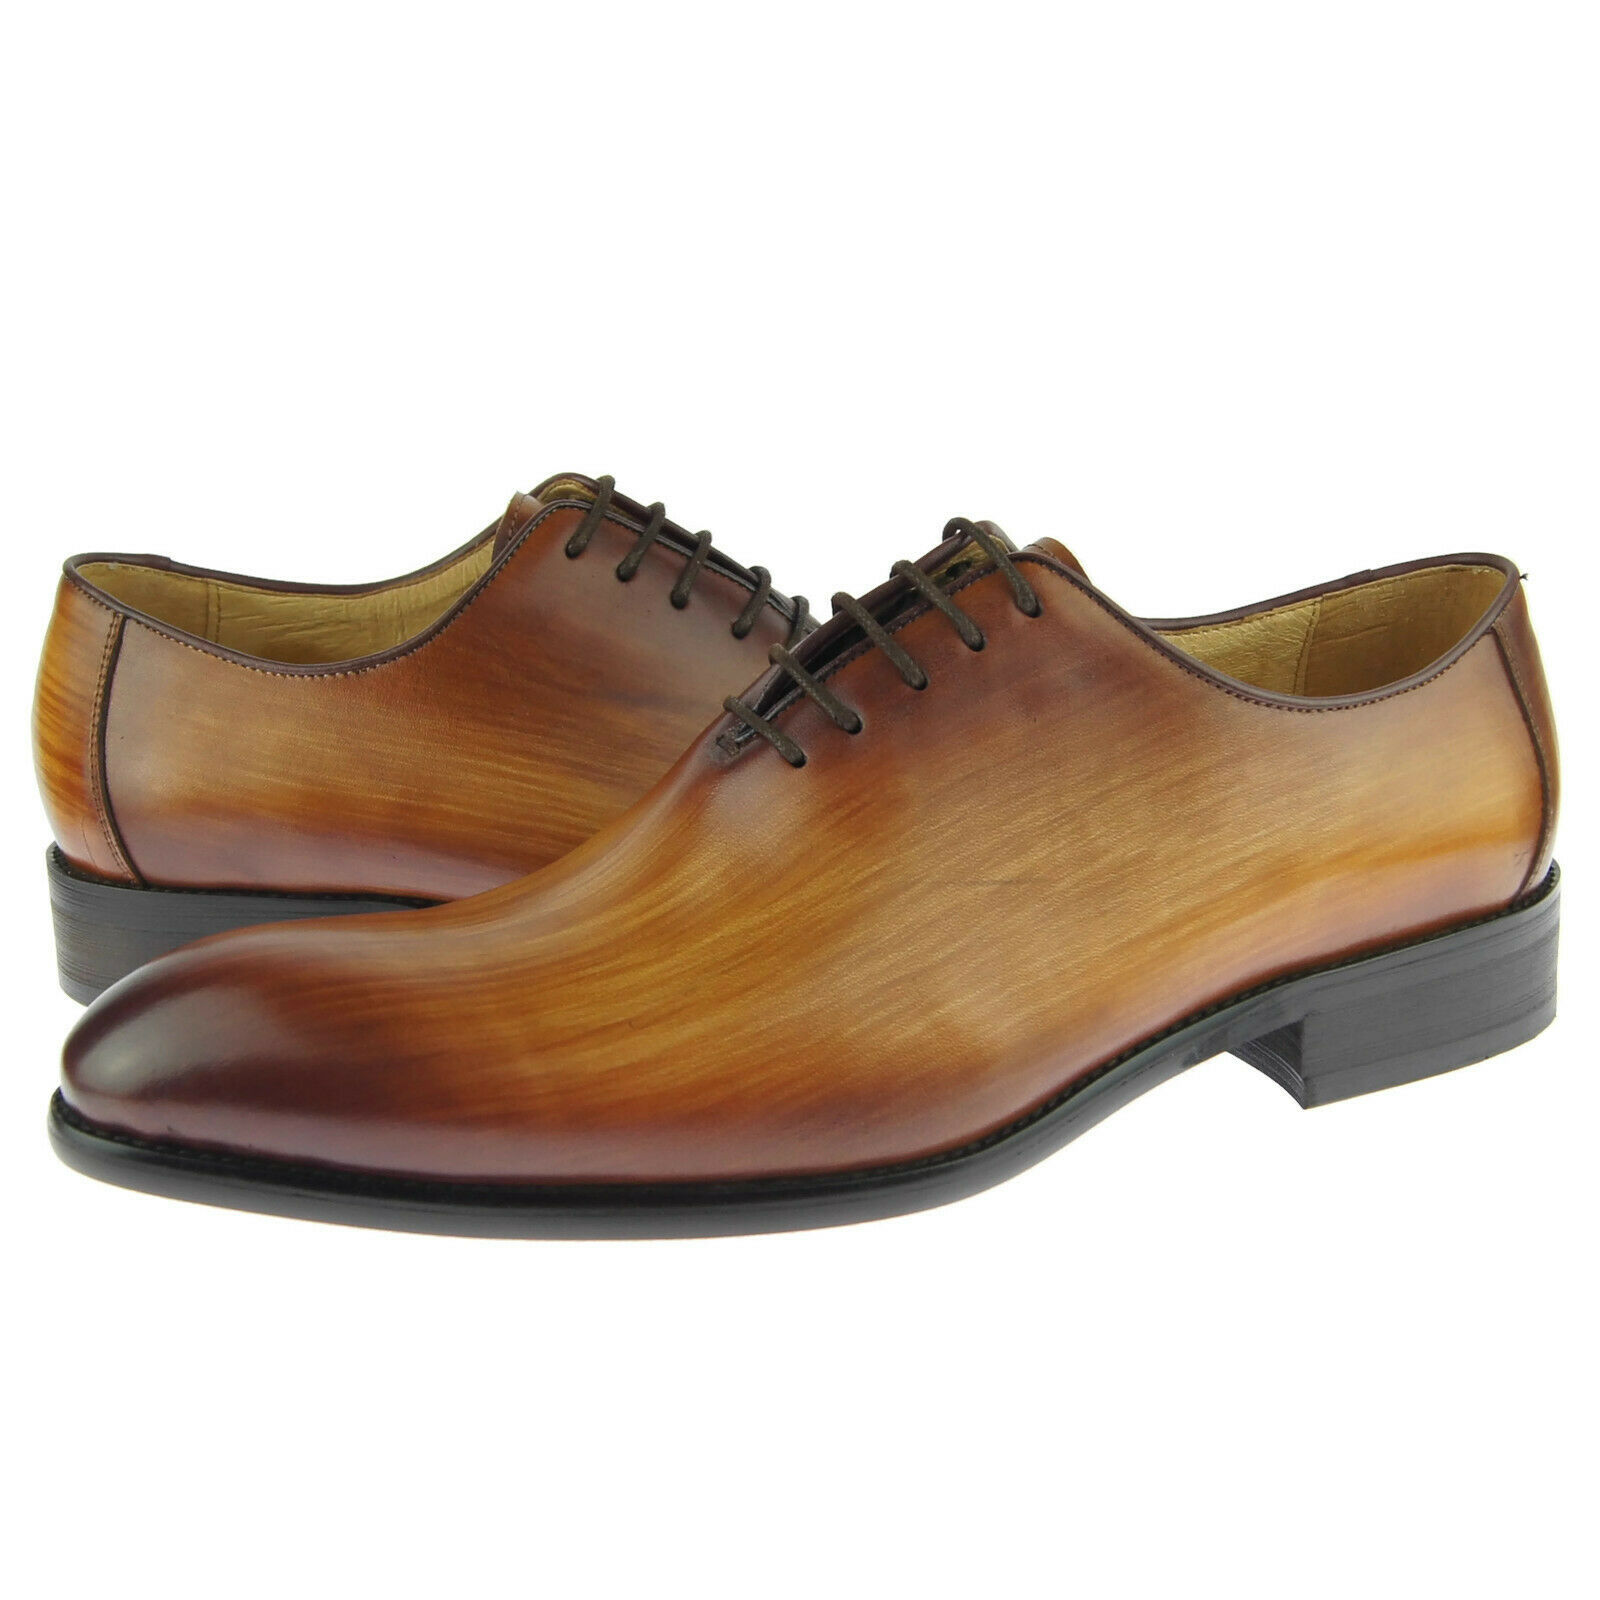 Carrucci Plain Toe Wholecut Oxford, Men's Dress Leather Shoes, Cognac